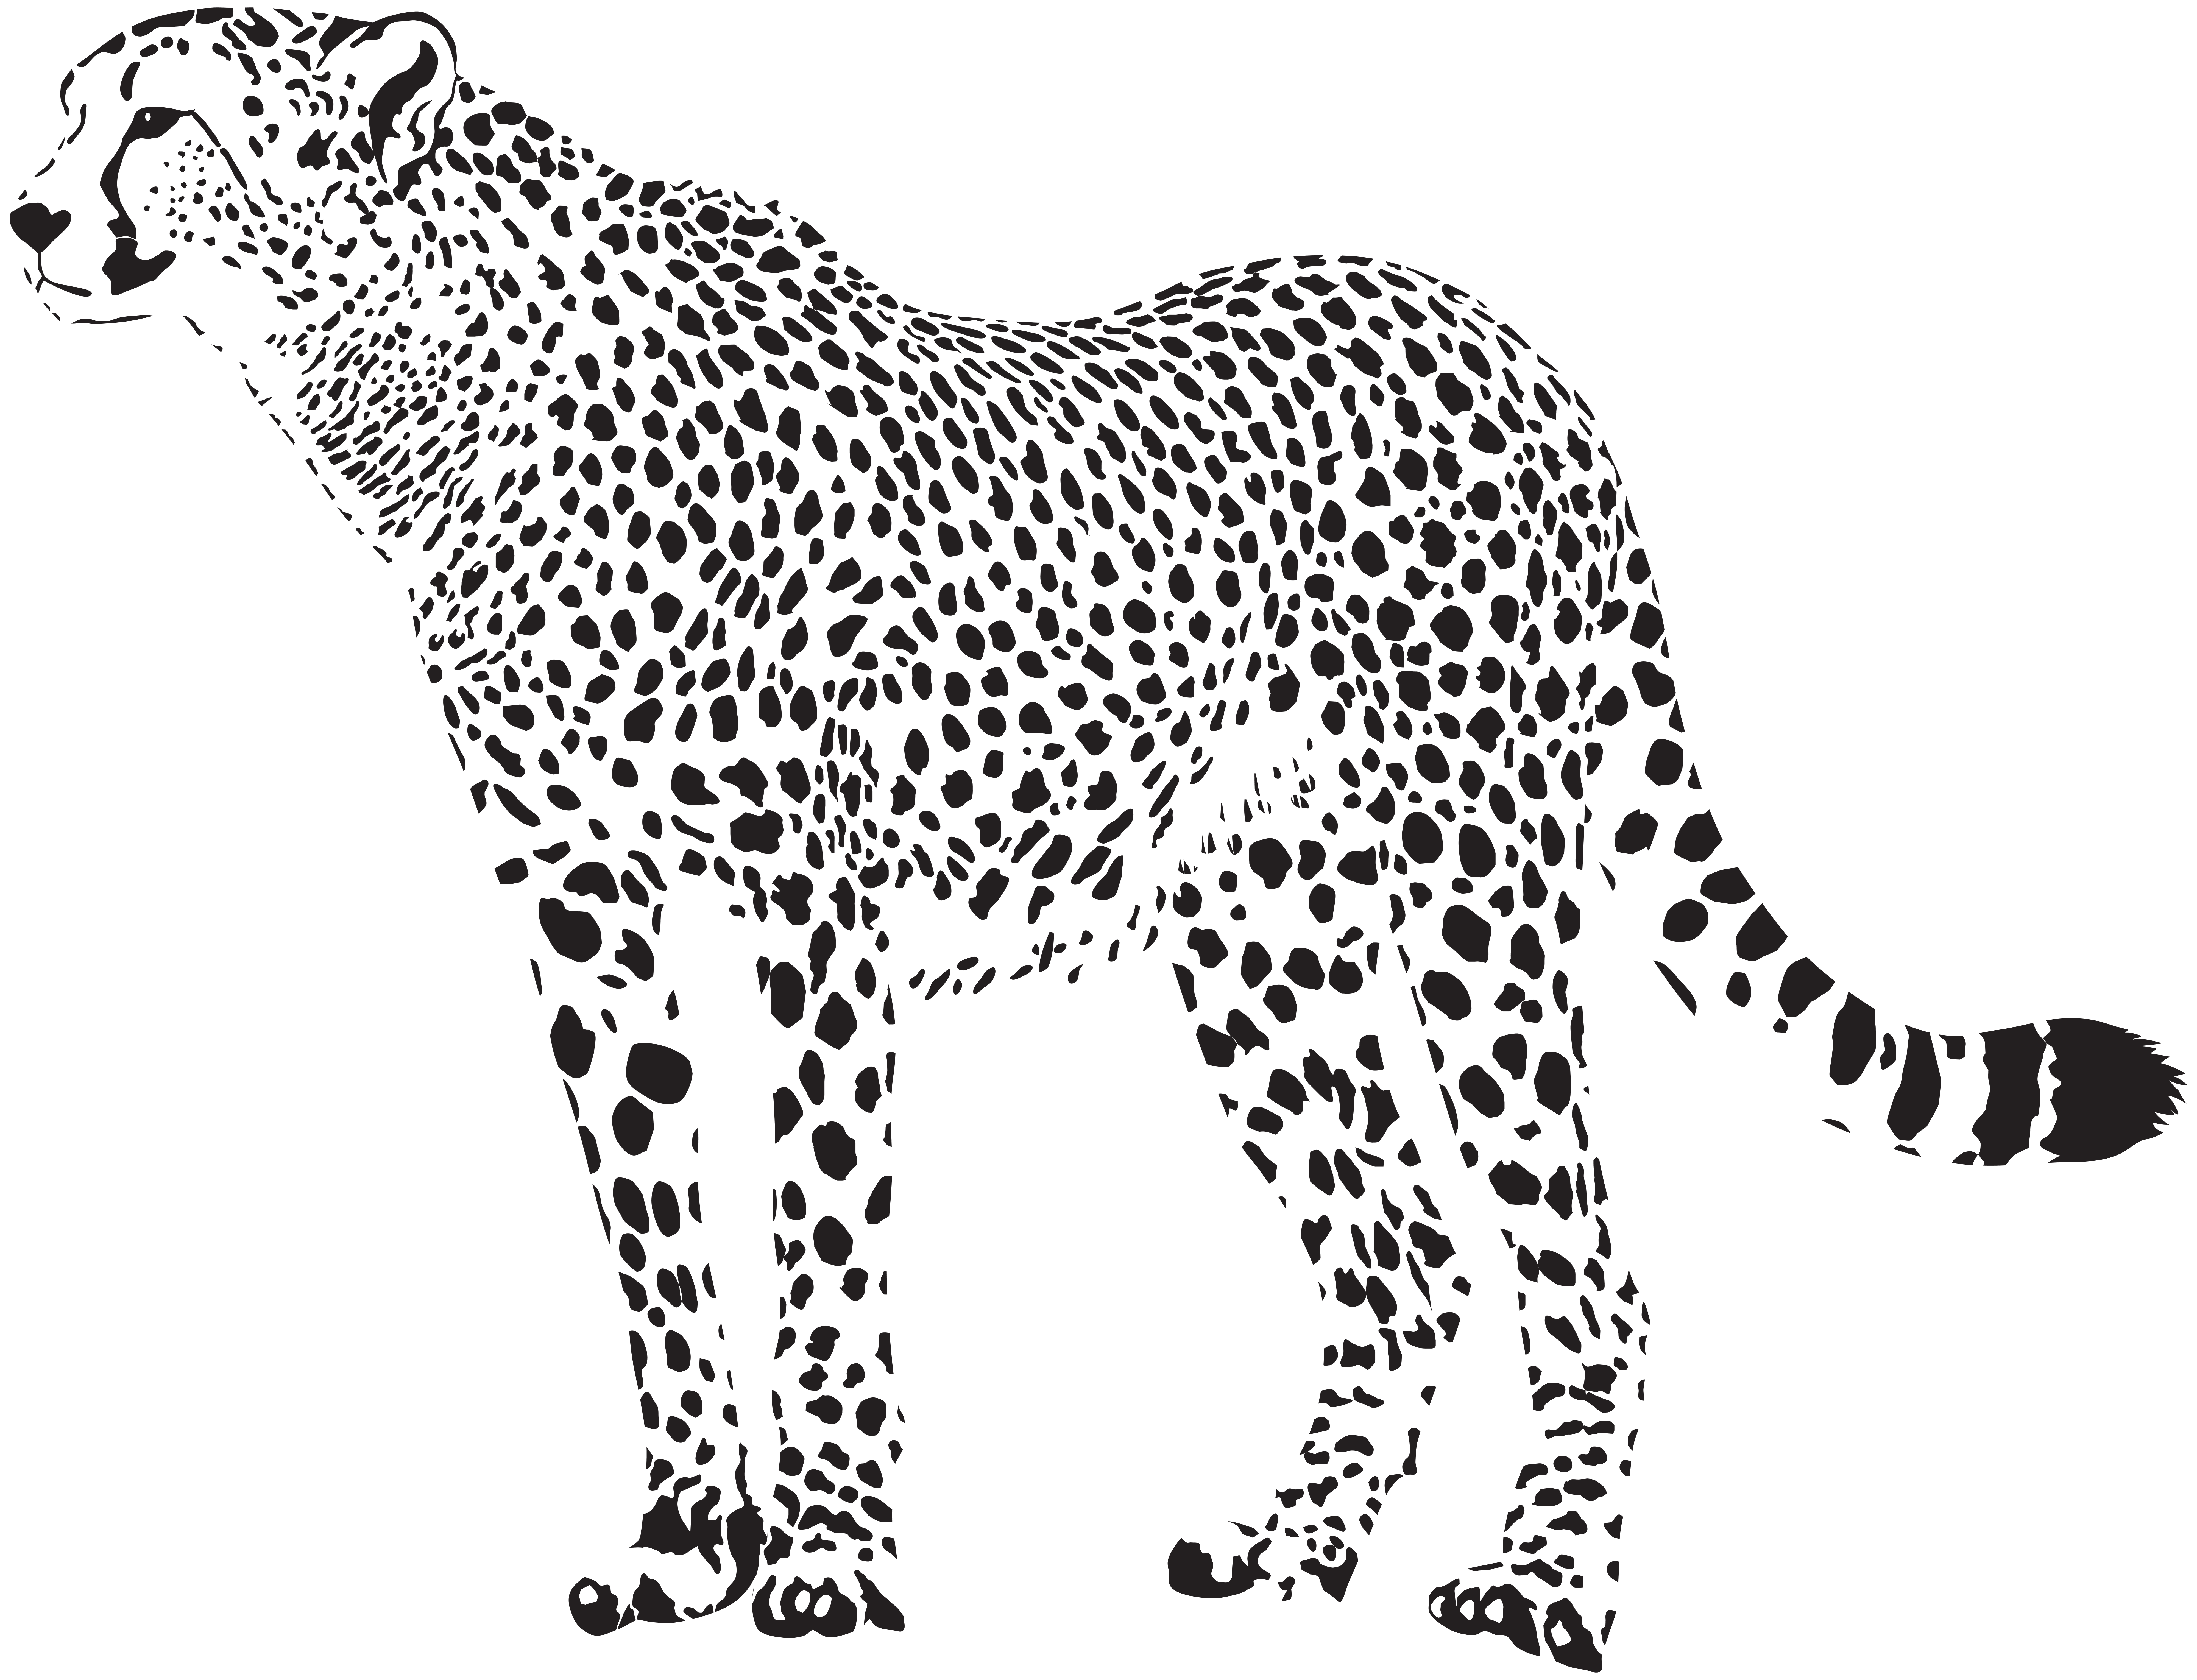 Cheetah stripes png. Silhouette transparent clip art